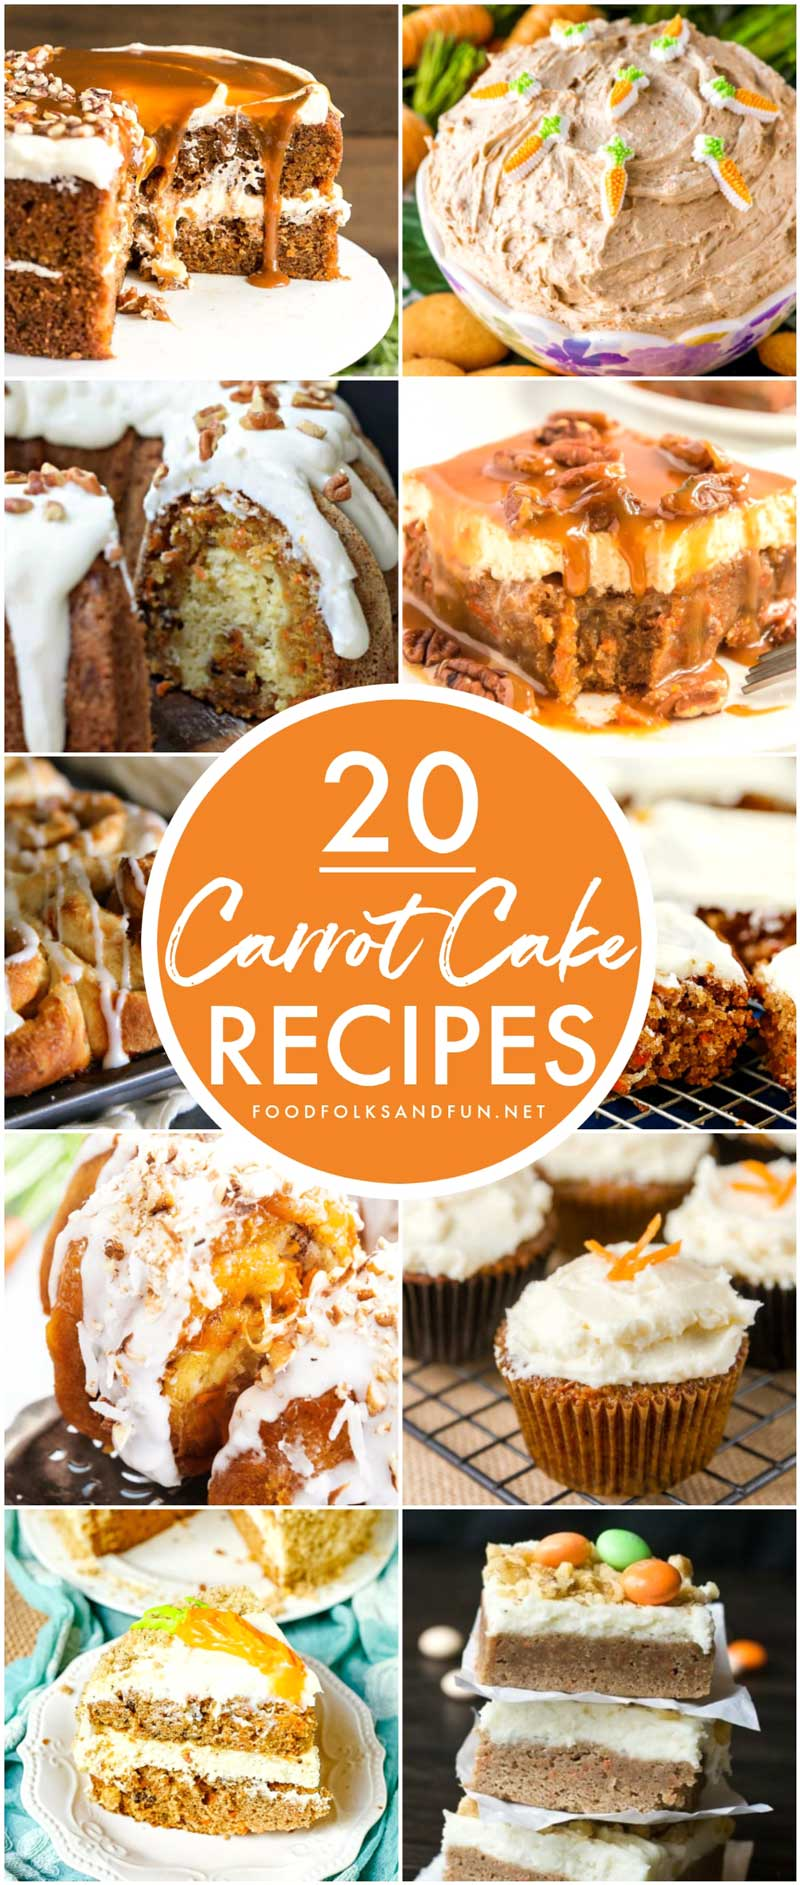 20 of the top Carrot Cake recipes from the top bloggers. Here you'll find carrot cake in different ways: cookies, dips, whoopie pies, trifles, monkey bread, donut holes, and more! via @foodfolksandfun